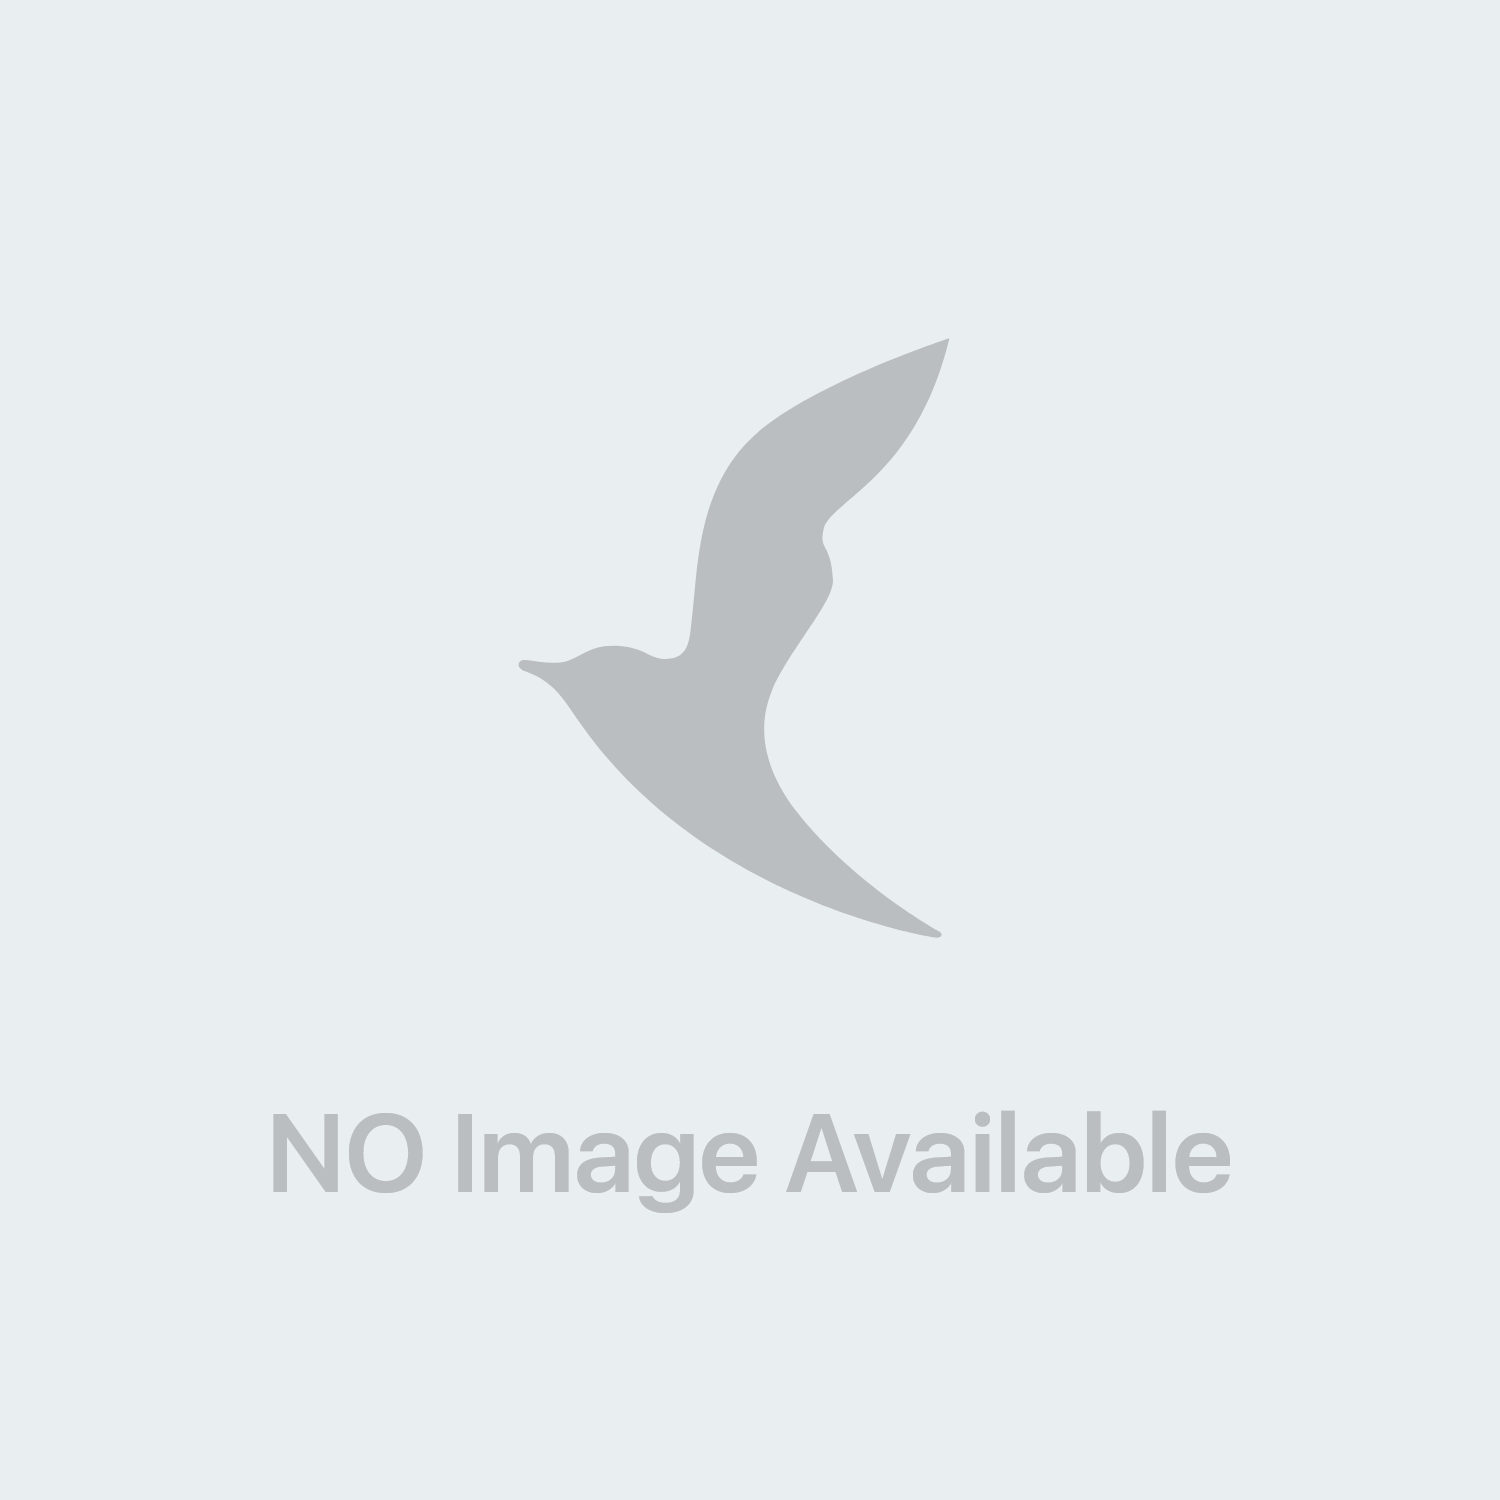 Acutil Multivitaminico Plus Integratore Vitaminico 20 Bustine